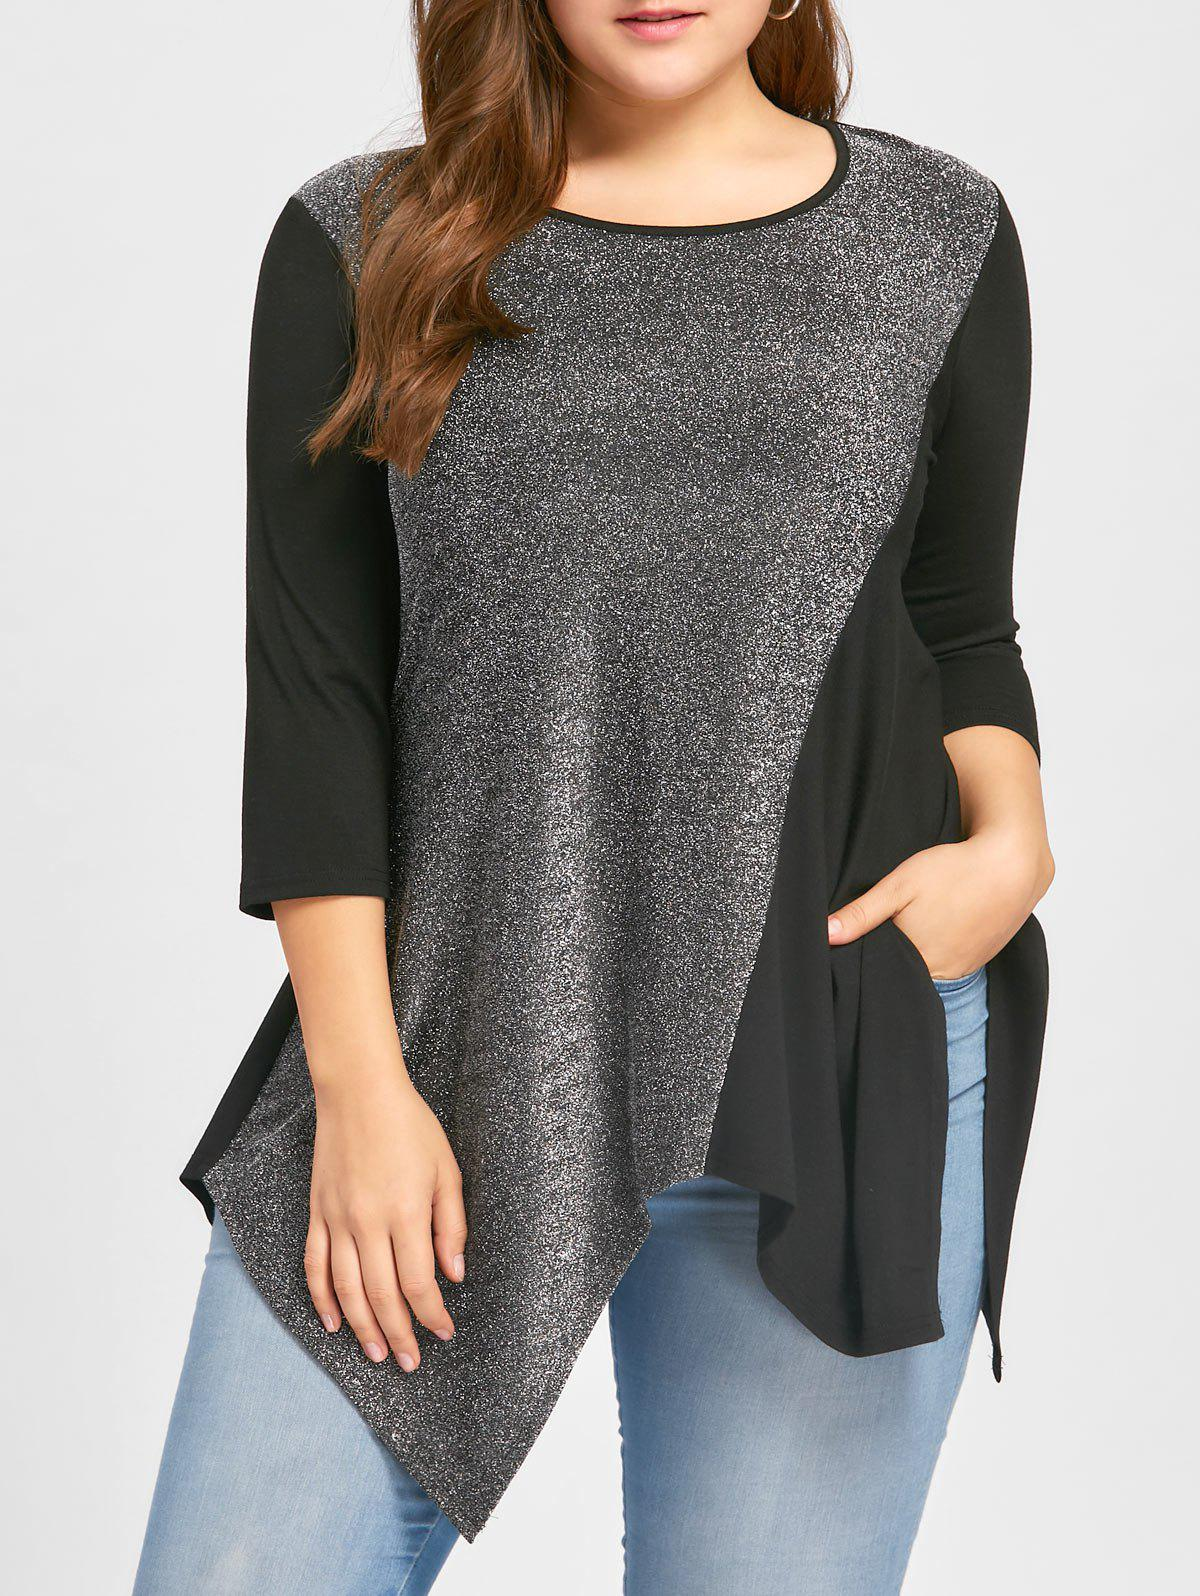 Plus Size Sequined Trim Handkerchief Tunic TopWOMEN<br><br>Size: 4XL; Color: BLACK; Material: Rayon,Spandex; Shirt Length: Regular; Sleeve Length: Three Quarter; Collar: Round Neck; Style: Casual; Season: Fall,Spring; Embellishment: Sequined; Pattern Type: Solid; Weight: 0.3000kg; Package Contents: 1 x Top;